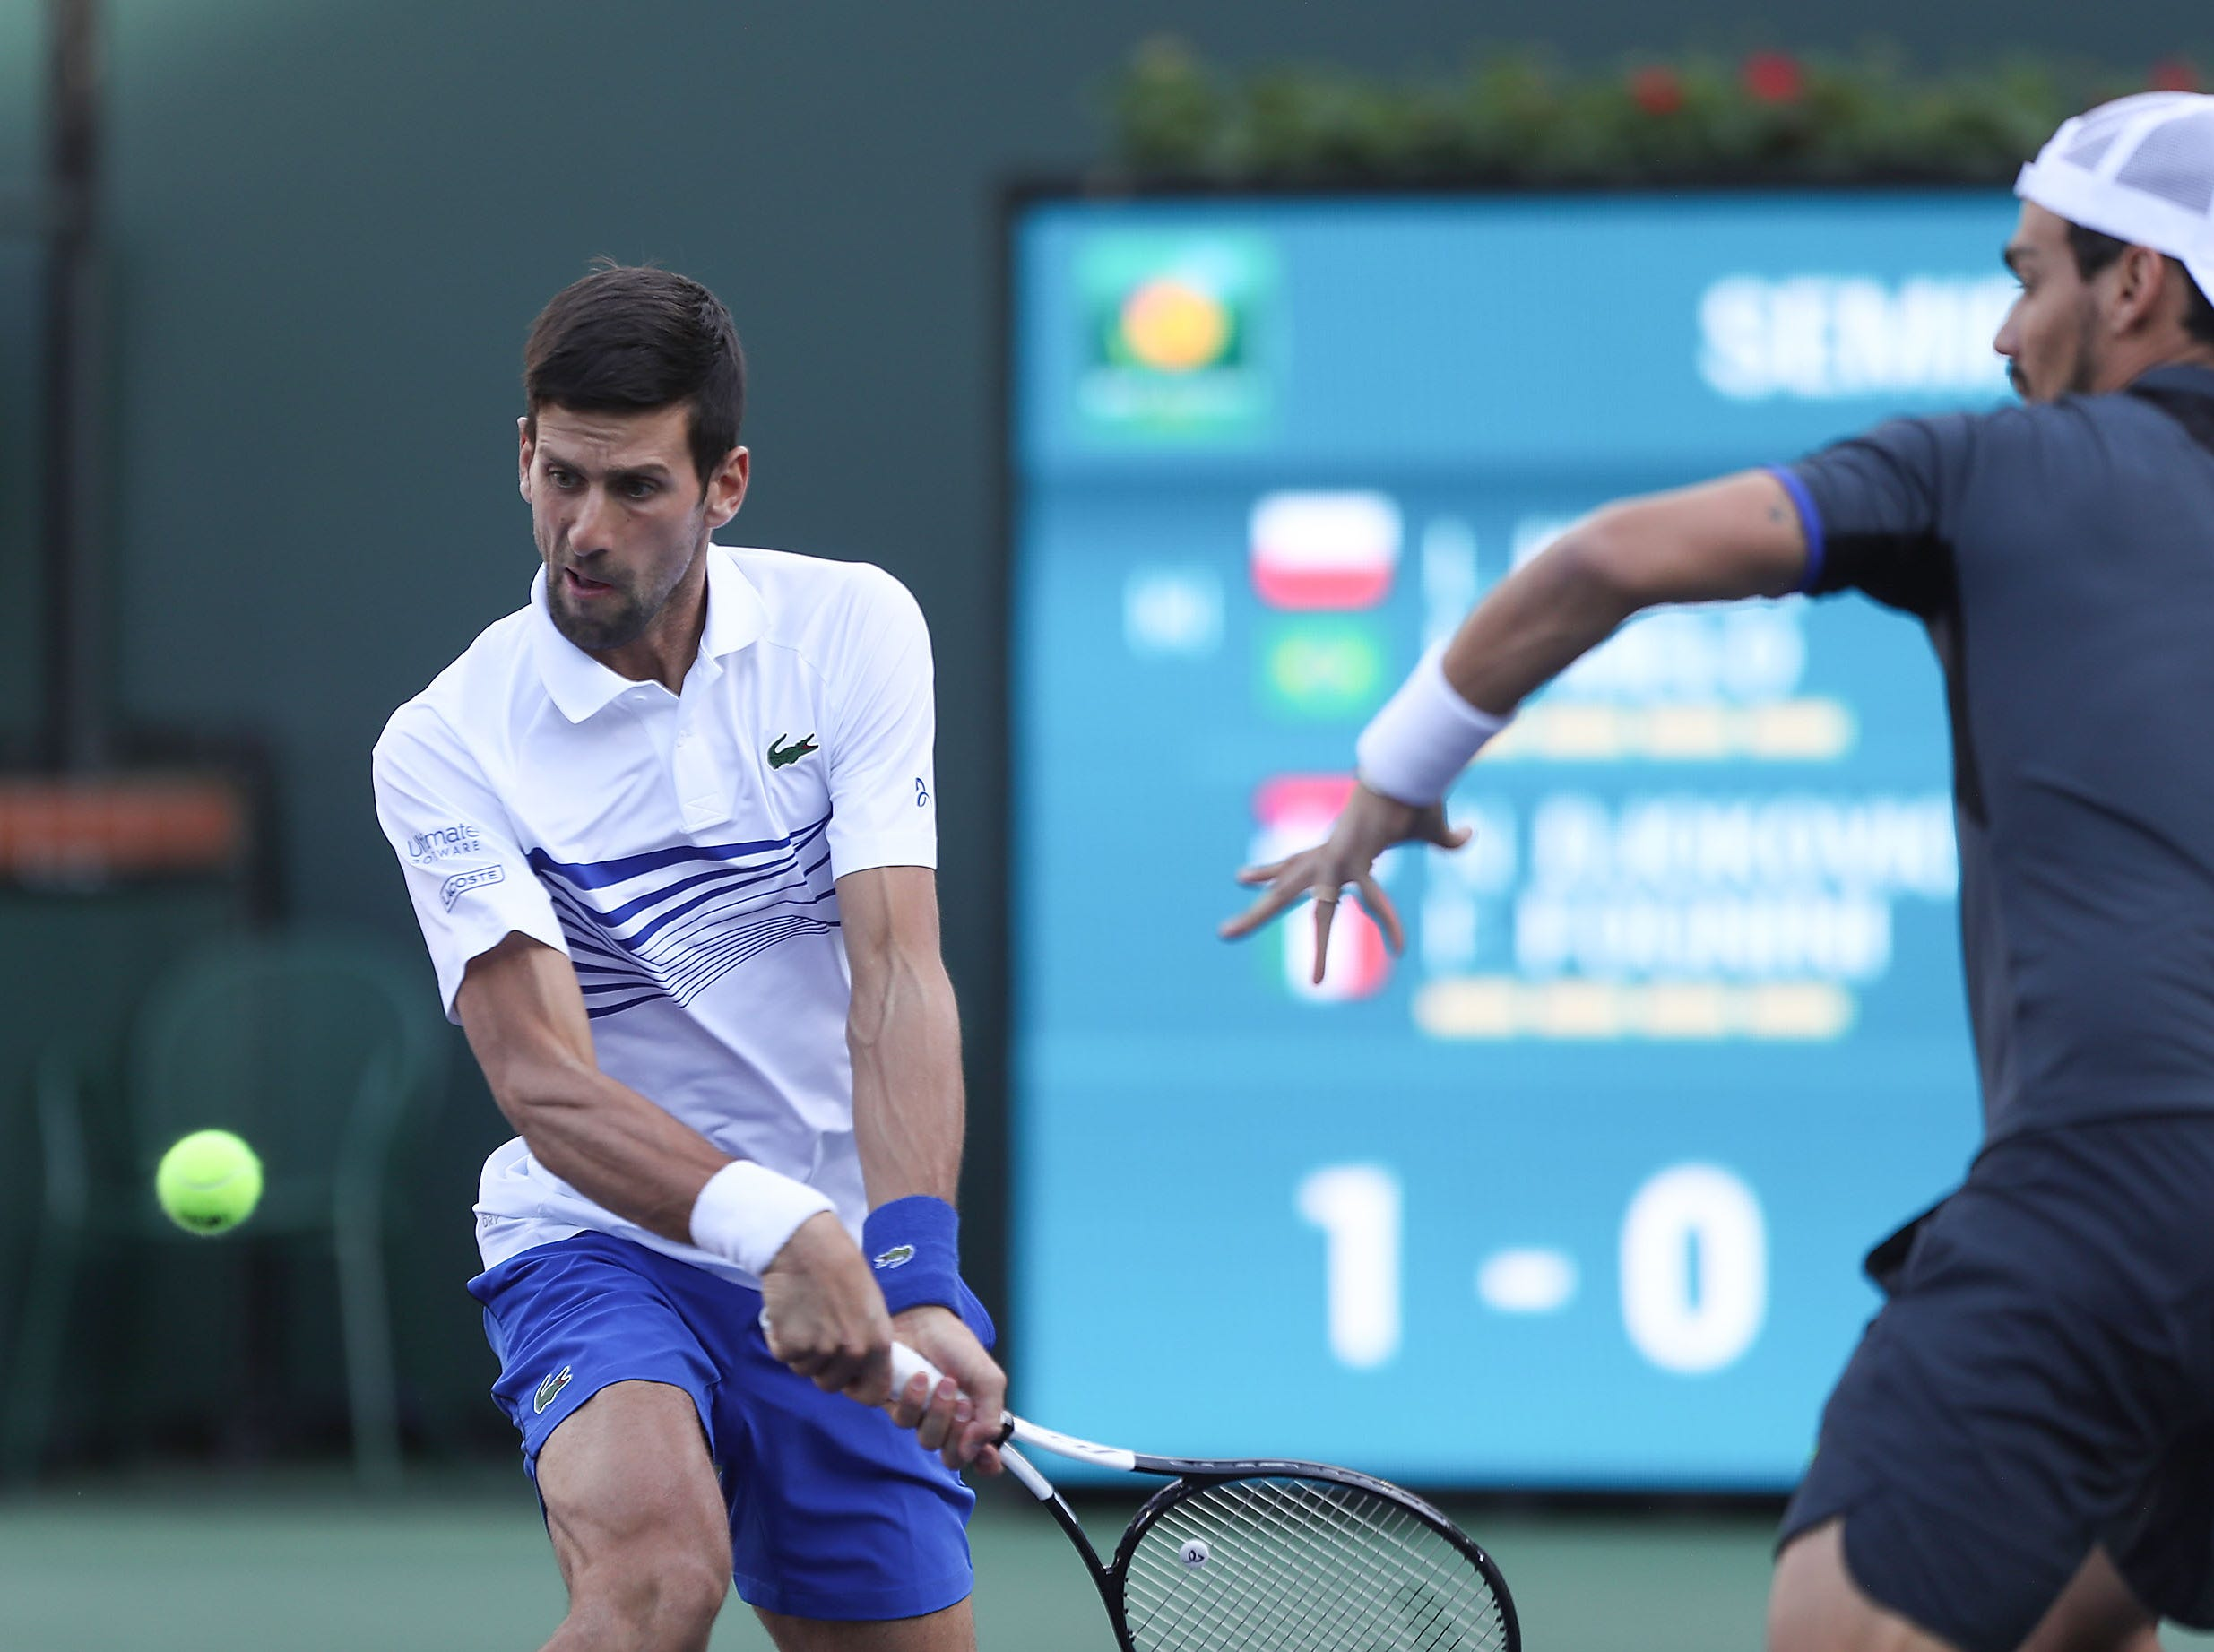 Novak Djokovic and Fabio Fognini play doubles against Lukasz Kubot and Marcelo Melo during the doubles semifinal match at the BNP Paribas Open in Indian Wells, March 15, 2019.